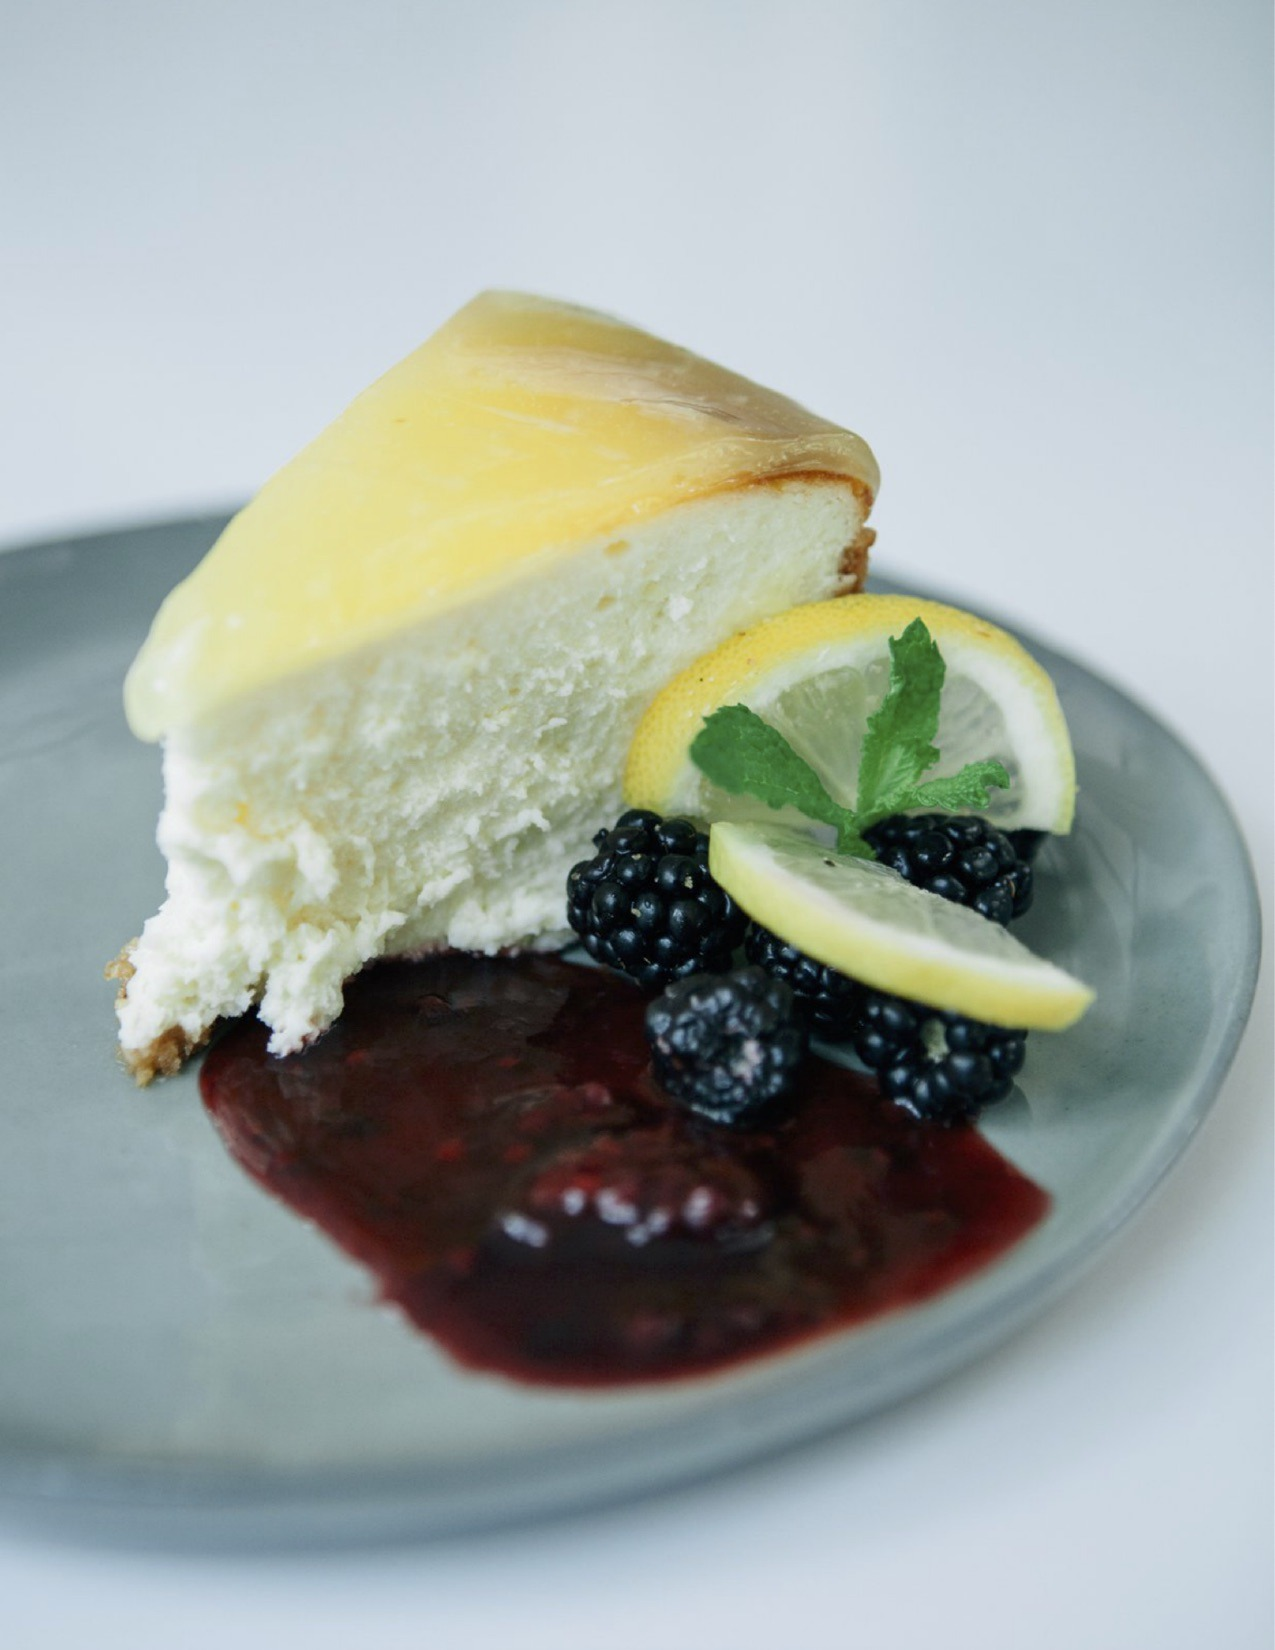 Sun-Sational Cheesecake